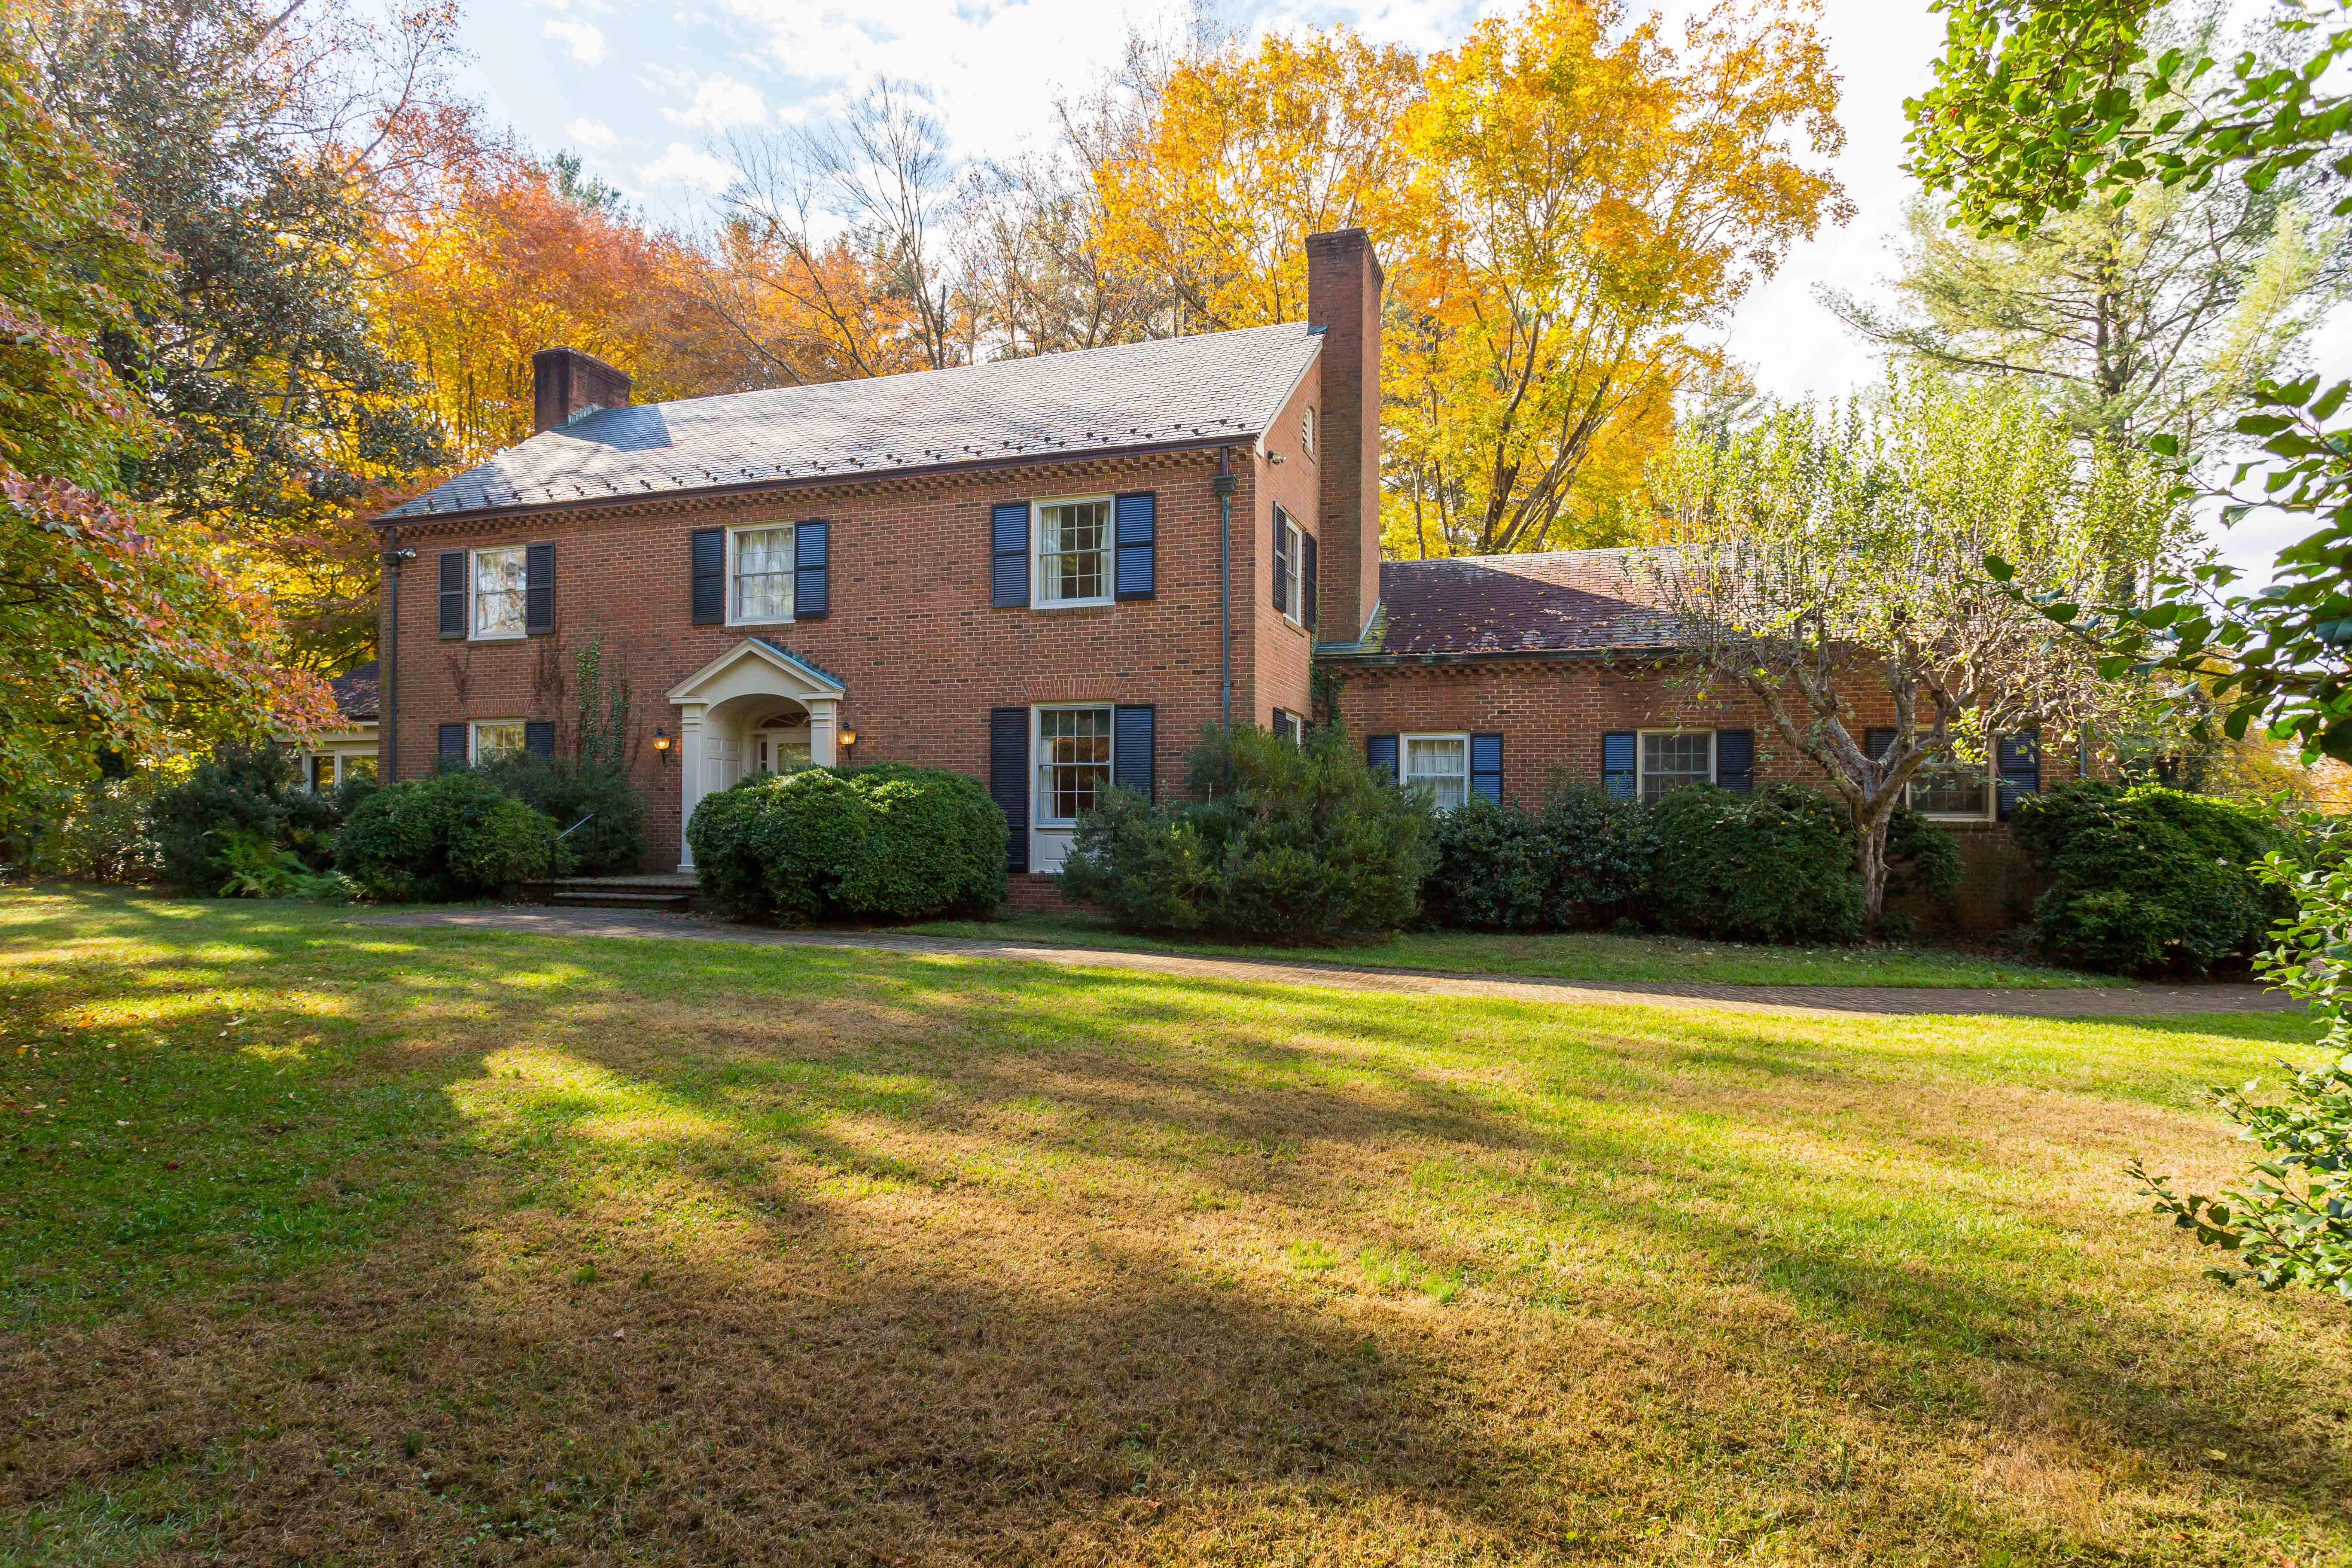 Single Family Home for Sale at 26 Old Farm Rd 26 Old Farm Road Charlottesville, Virginia, 22903 United States